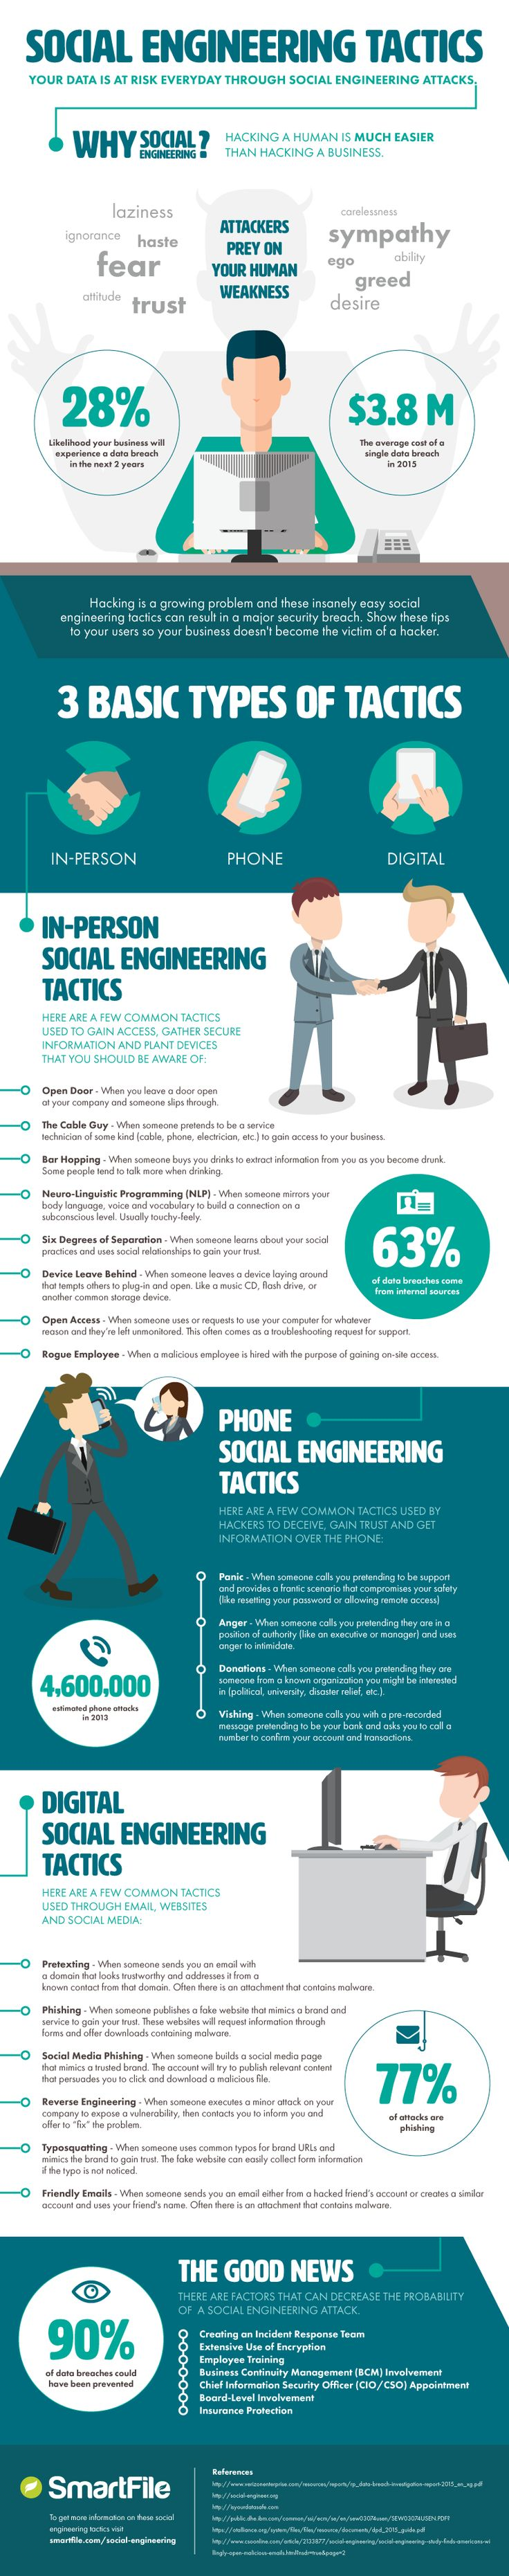 Social Engineering Tactics | #Infographic  also see :- http://www.solvemyhow.com/2014/03/how-to-hack-wifi-password-in-2-minutes.html